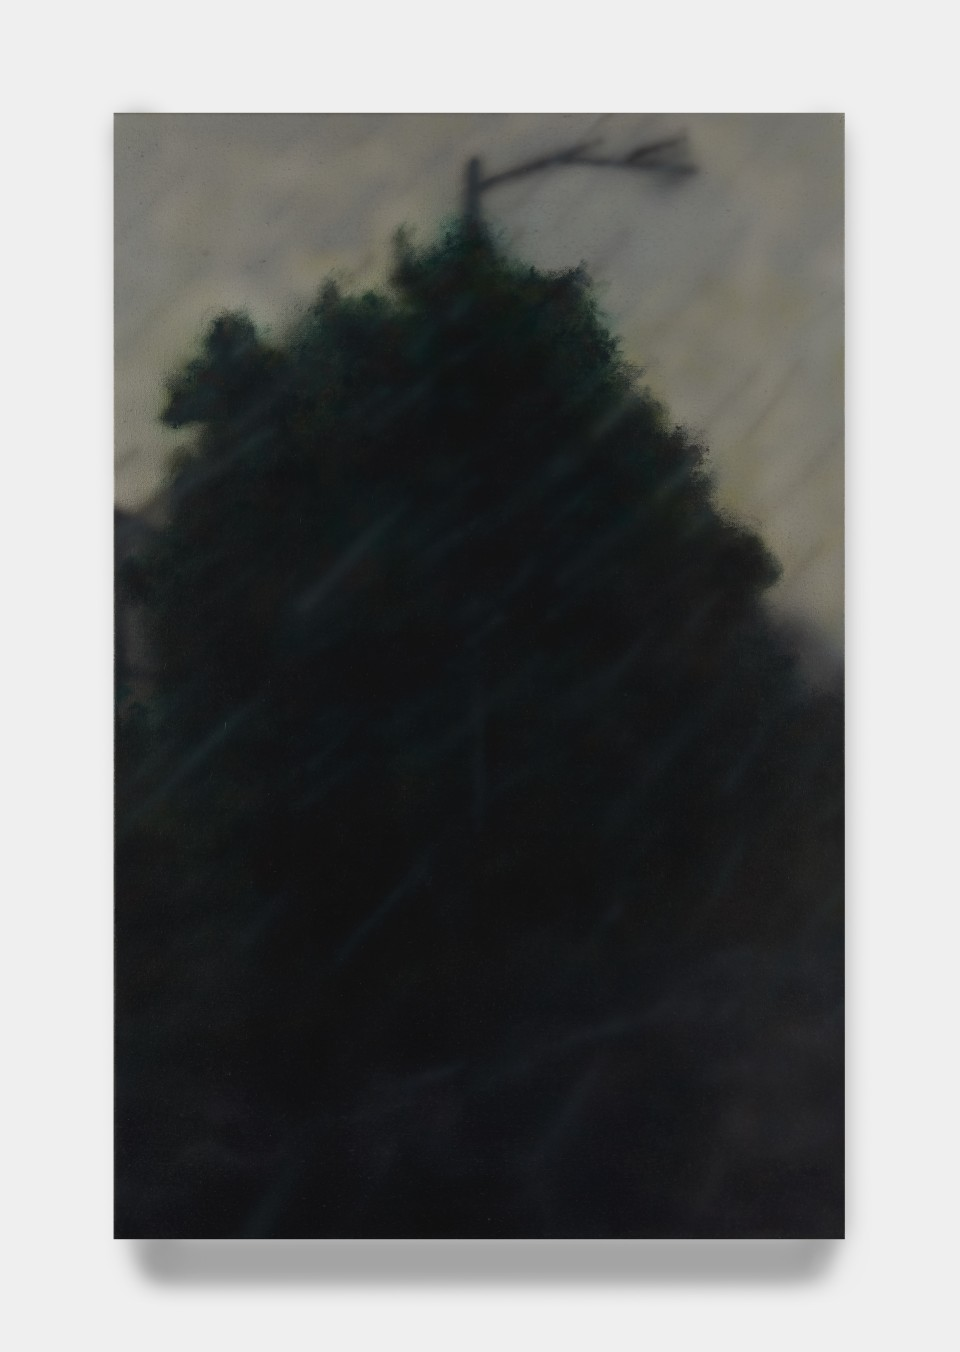 Image: Sung Hwa Kim  Last days, endless monsoon, 2020  signed, titled and dated verso  acrylic on canvas  40 x 26 inches (101.6 x 66 cm)